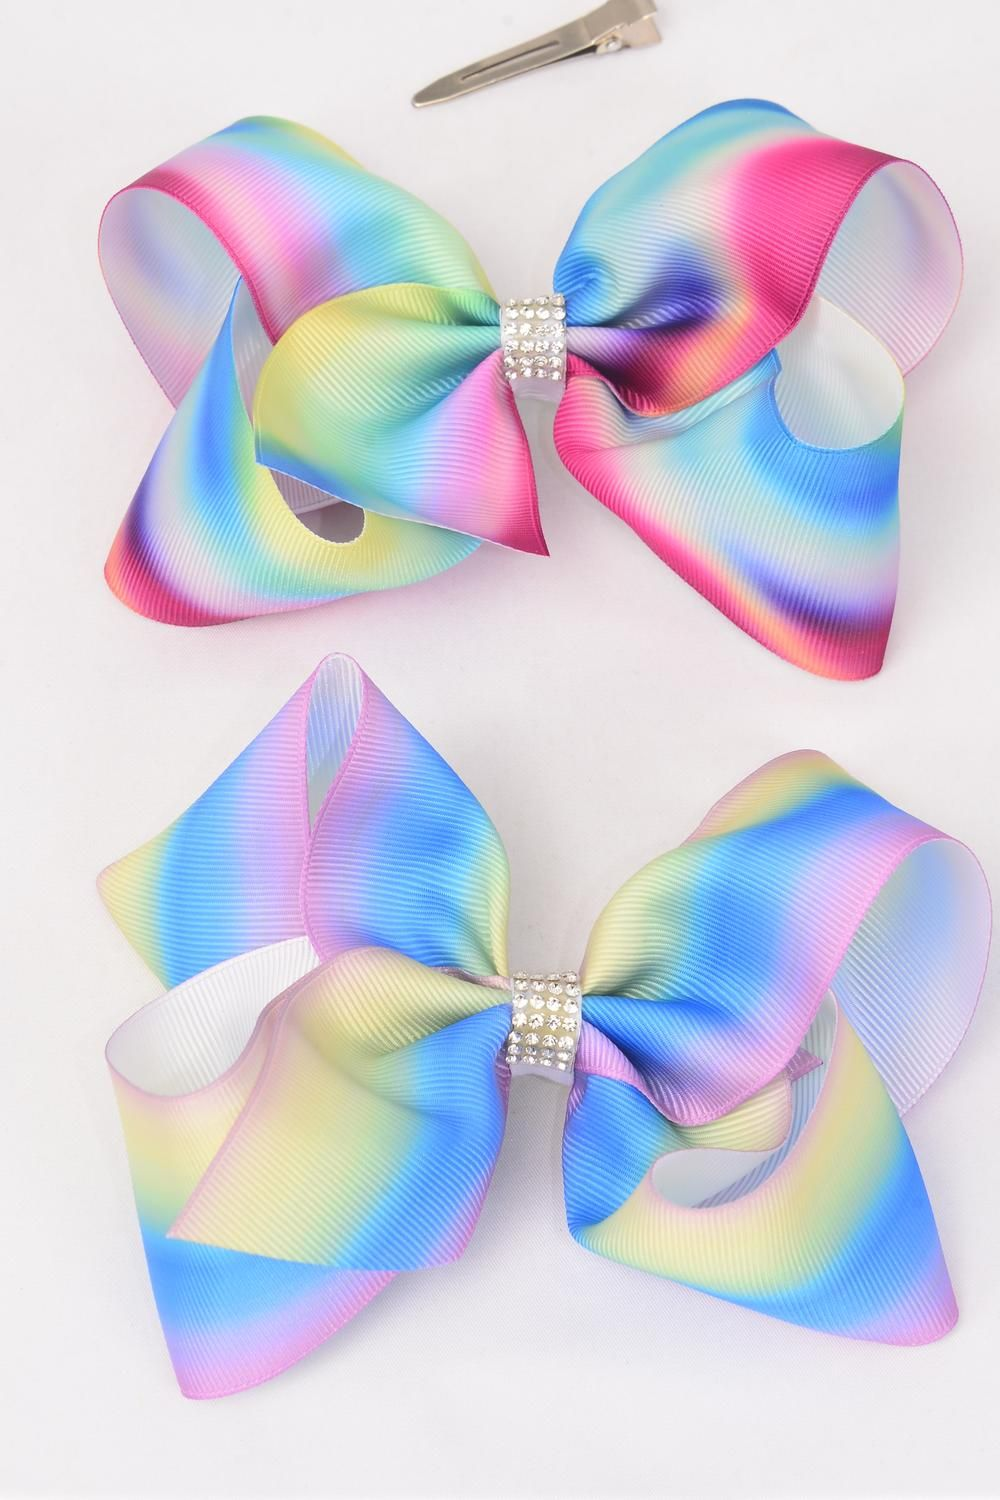 "Hair Bow Jumbo Tiedye Grosgrain Bow-tie Pastel/DZ **Alligator Clip** Size-6""x 5"" Wide,6 of each Pattern Mix,Clip Strip & UPC Code"